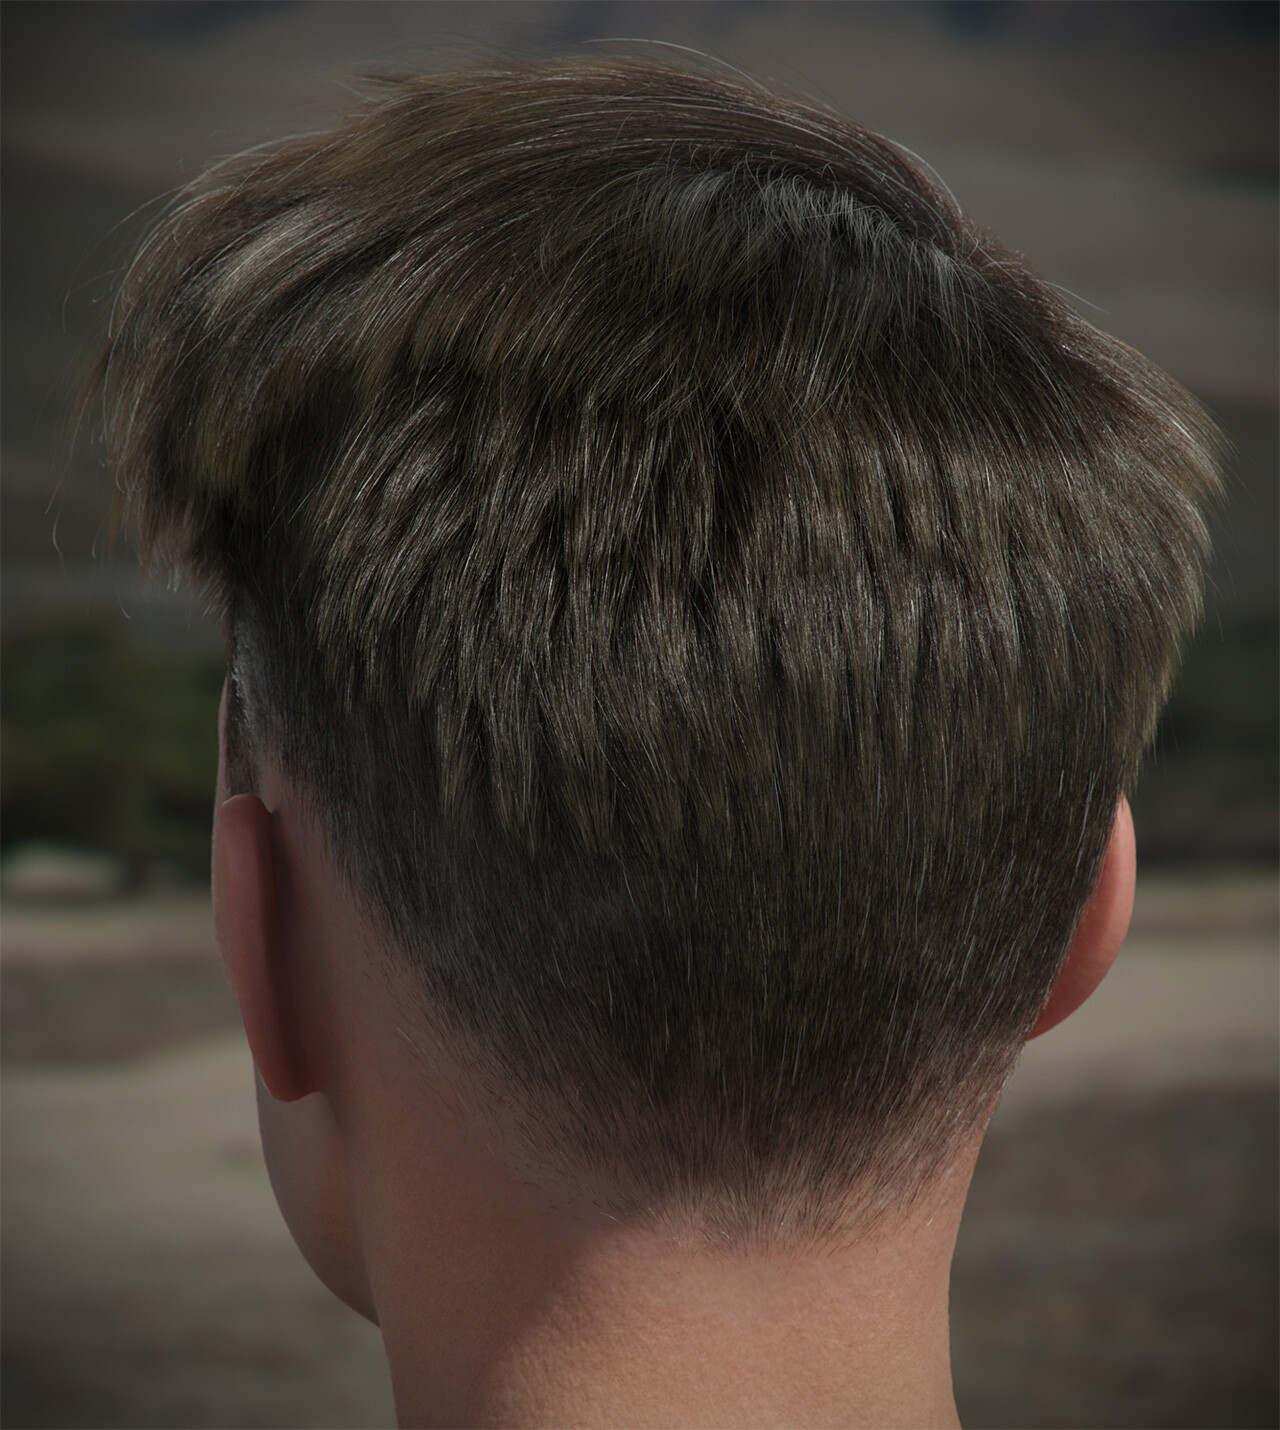 Andrew krivulya genry haircut 1 by akcharly cam03